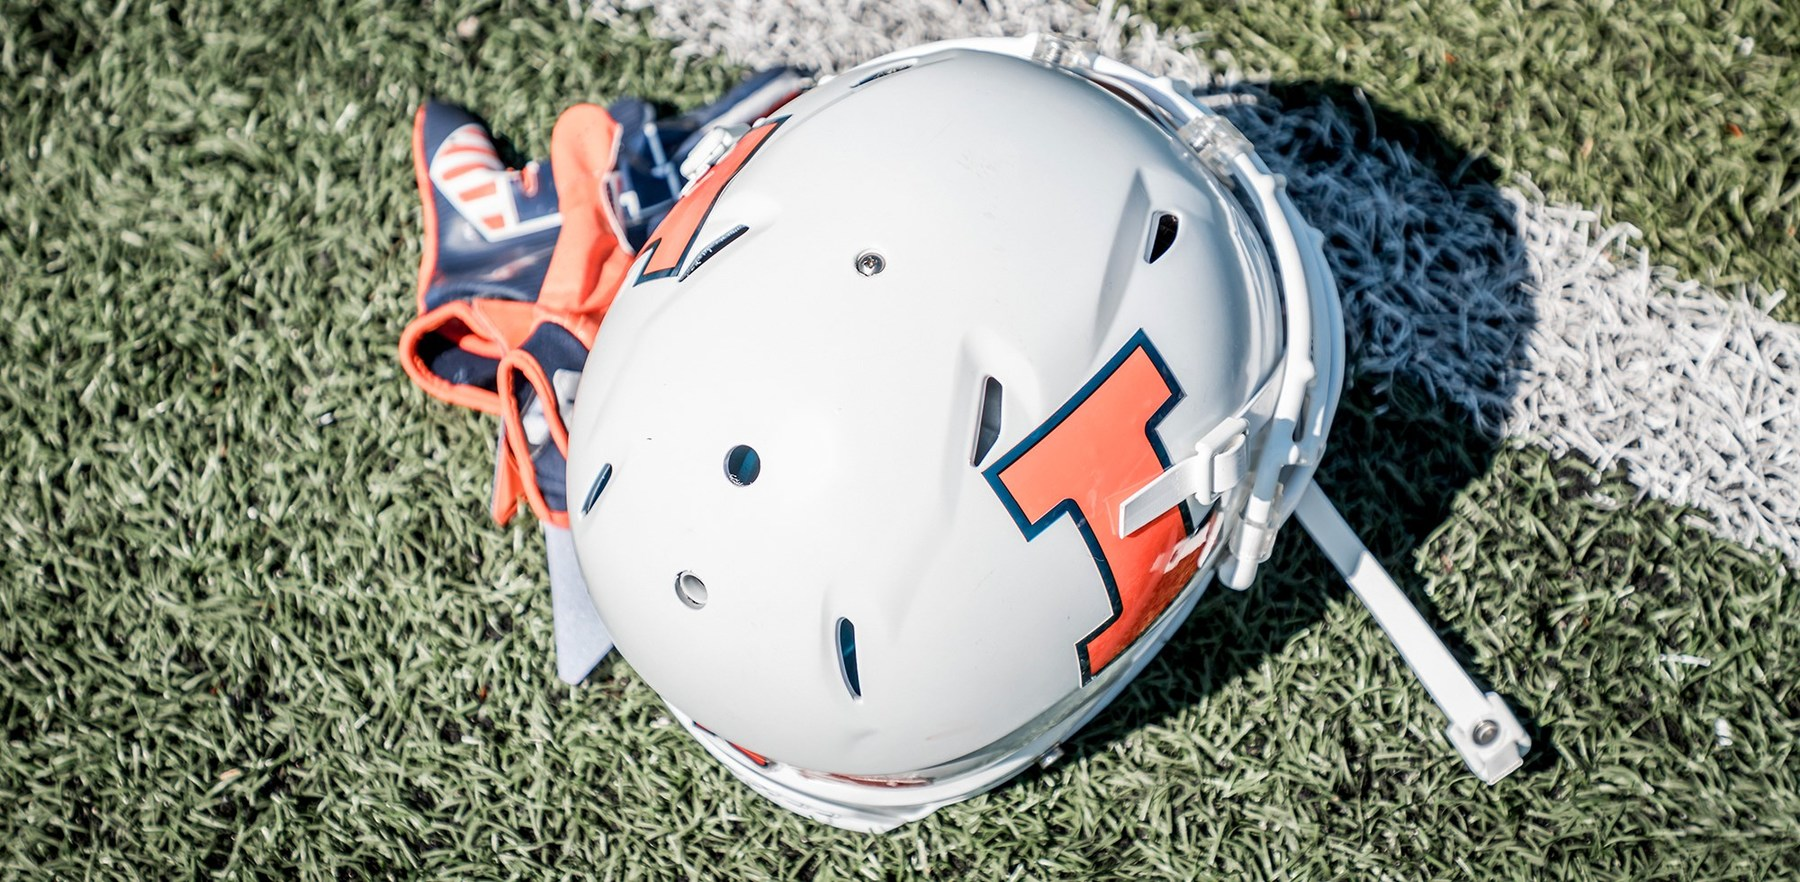 White Illini Football helmet on turf